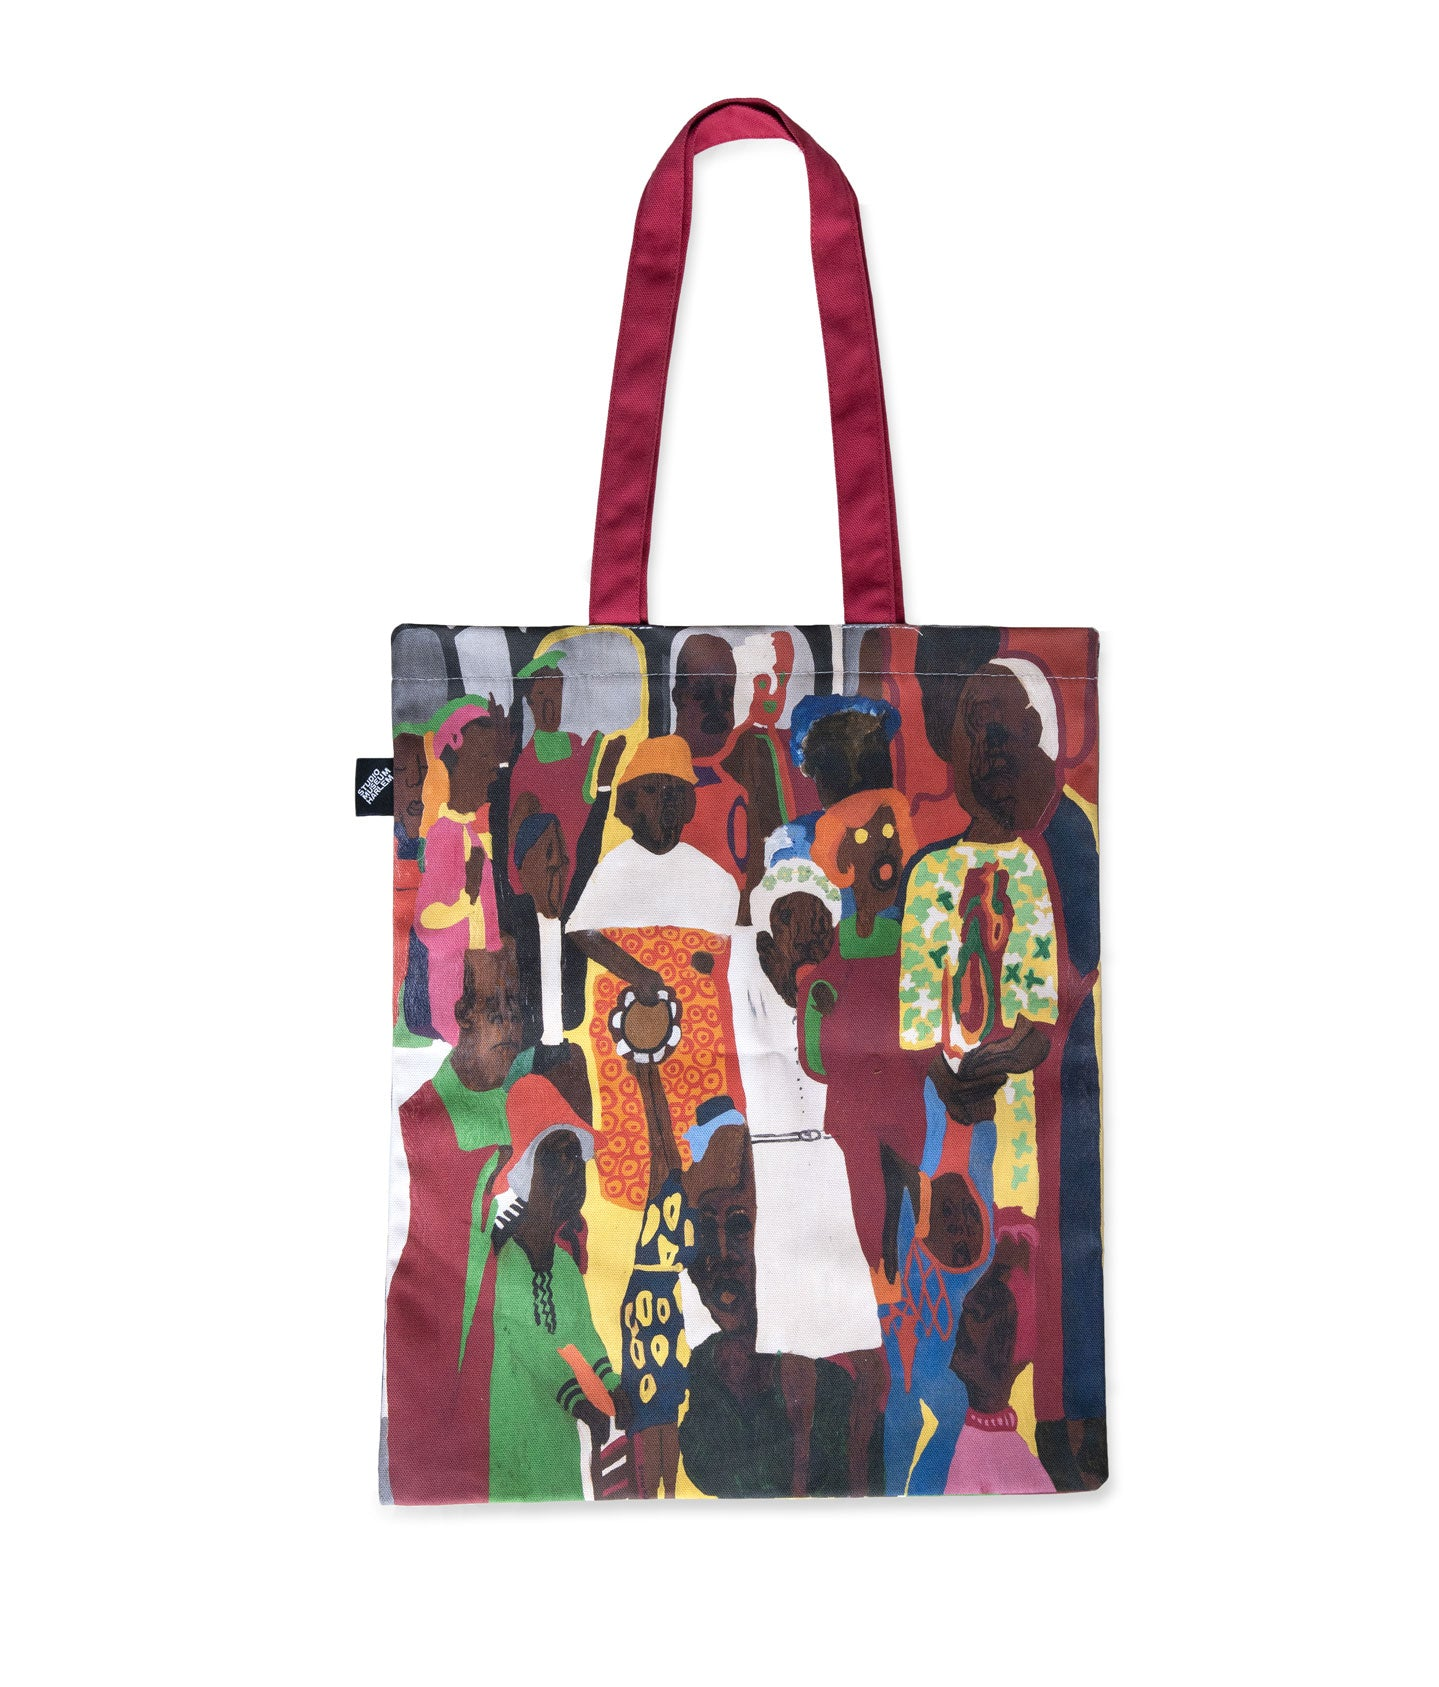 Stephanie Weaver, Hallelujah, Tote Bag